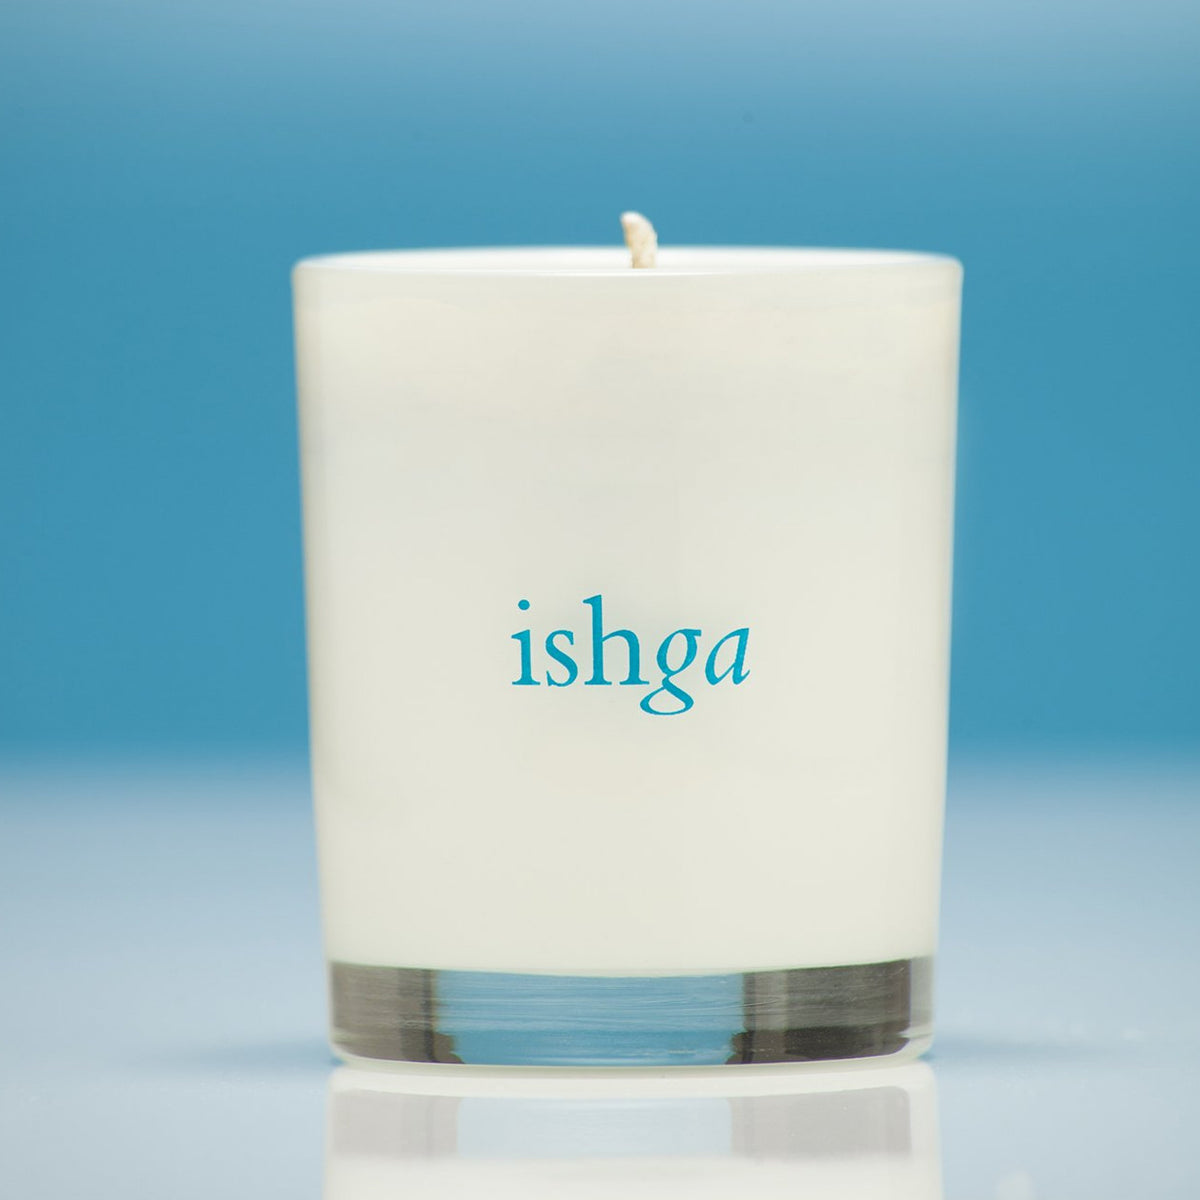 ishga Hebridean Dreams Hand Poured Seaweed Candle 9cl